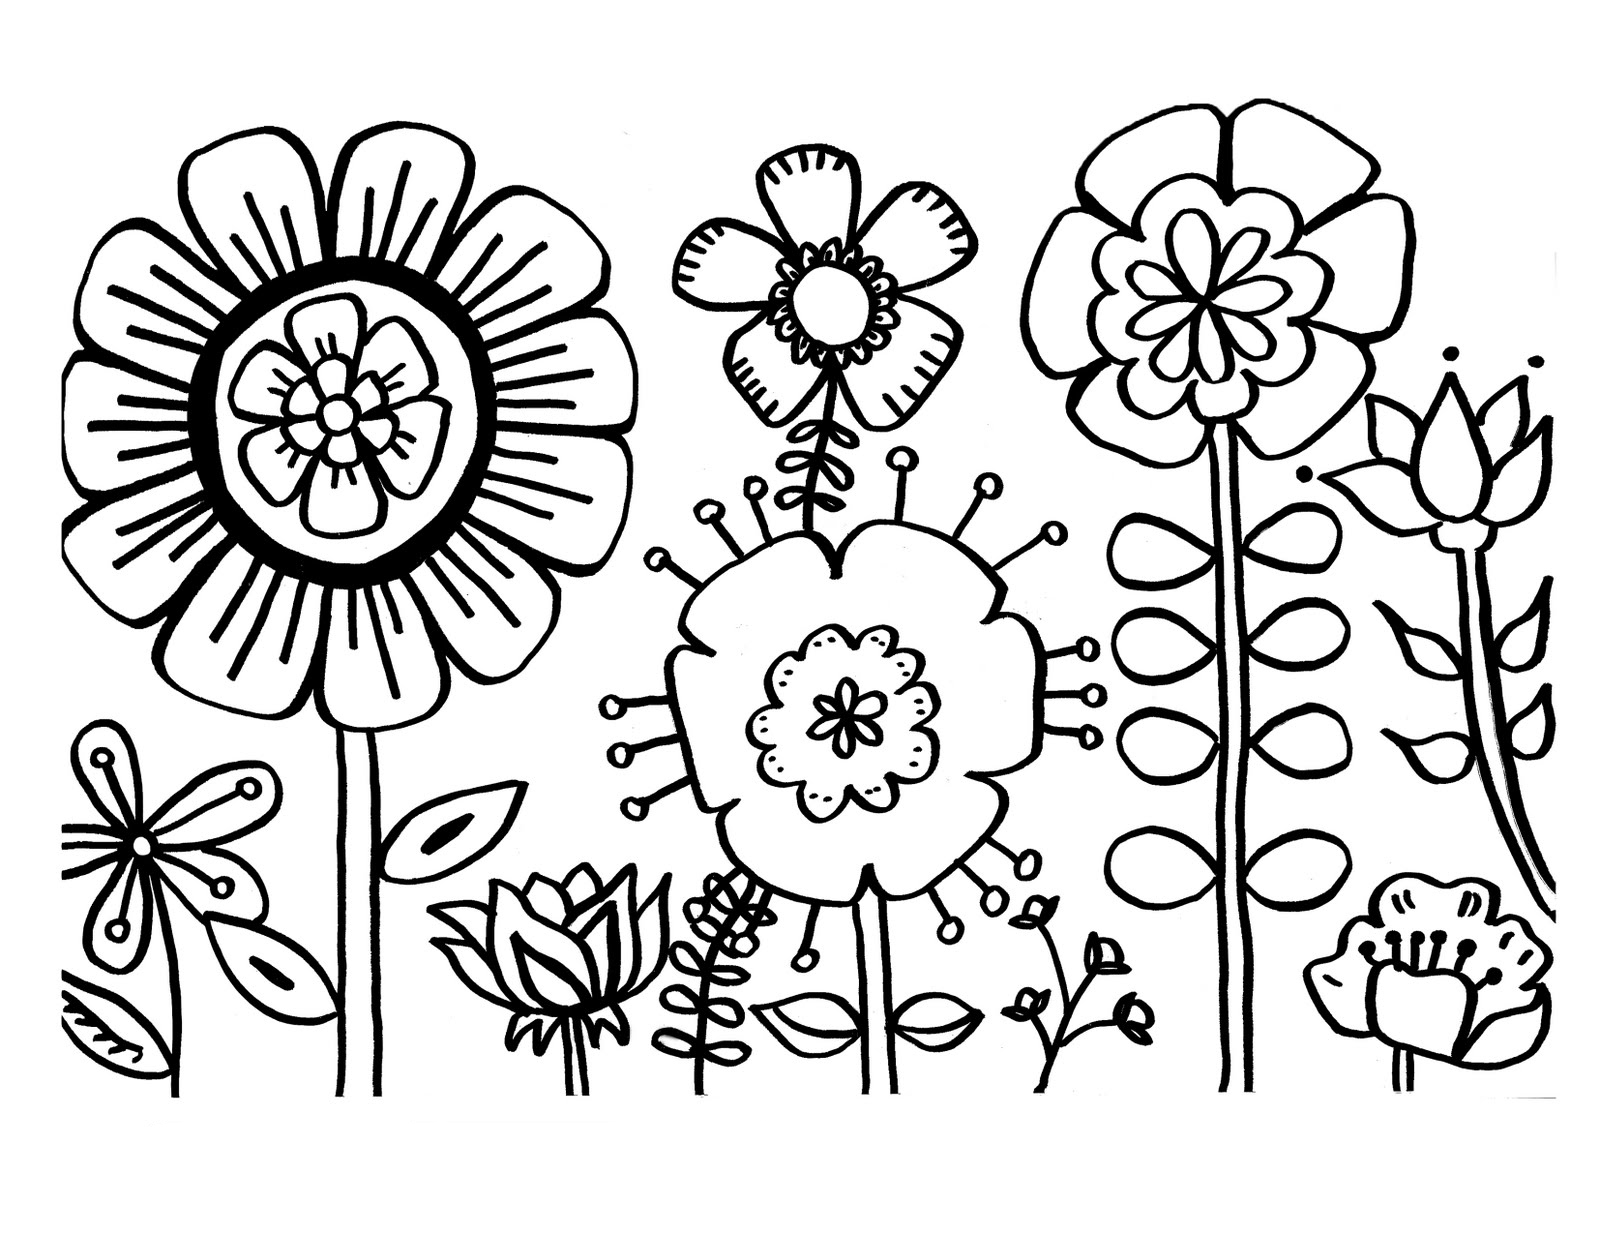 flowers coloring pages printable large flowers coloring pages to download and print for free flowers pages printable coloring